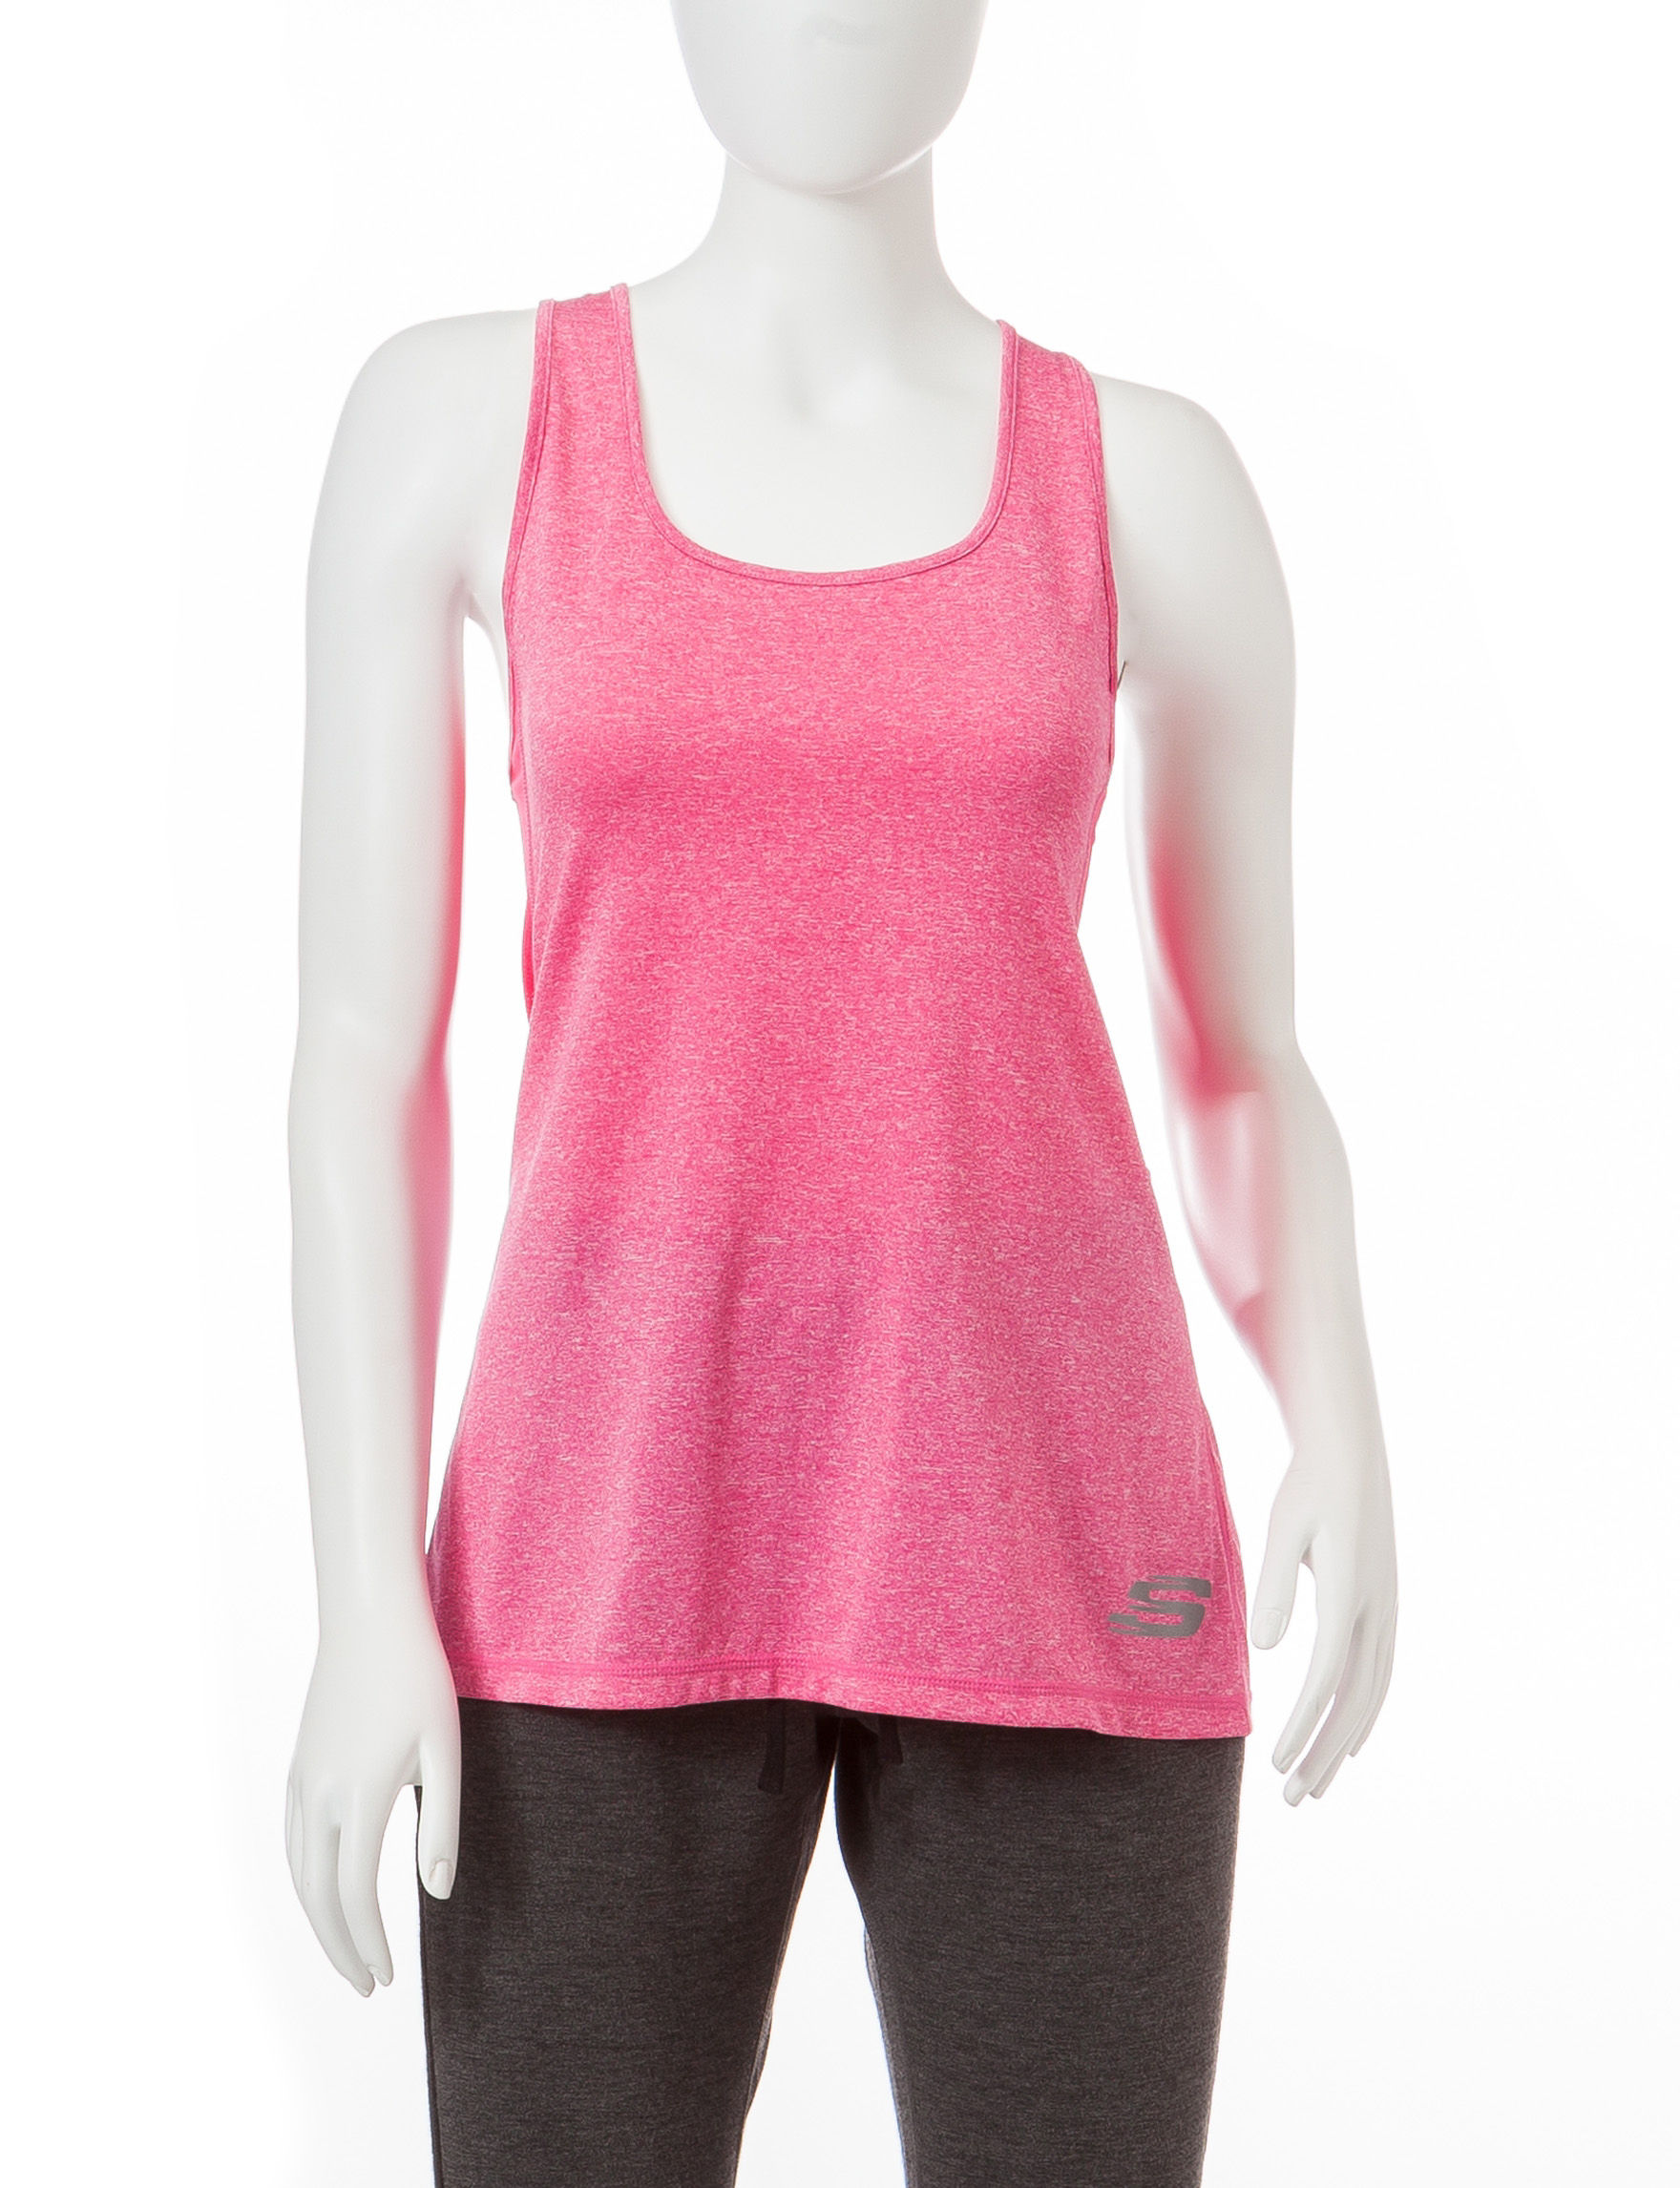 Skechers Raspberry Tees & Tanks